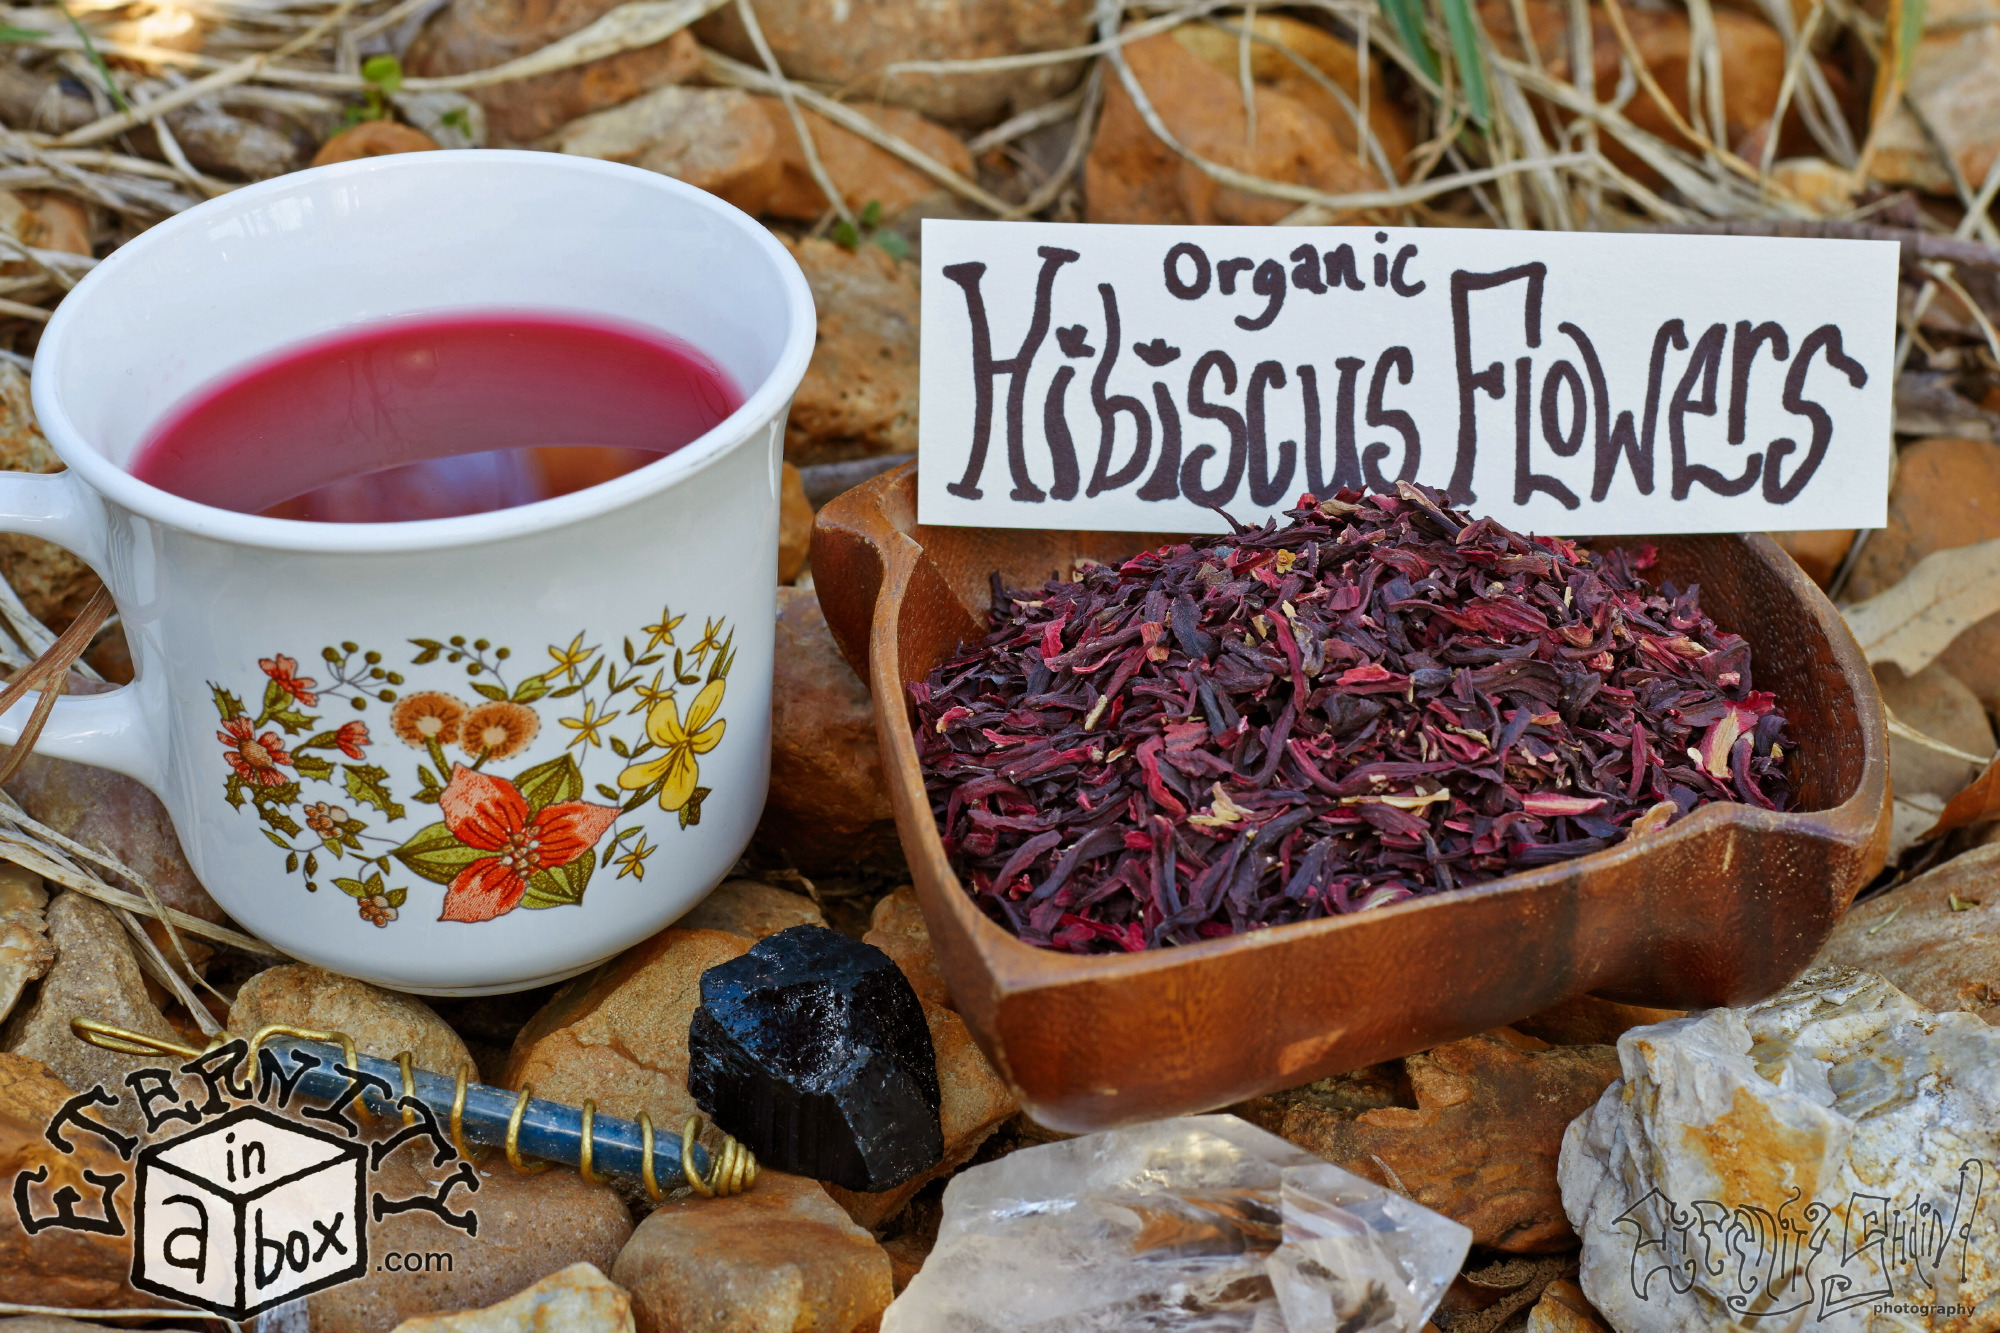 Hibiscus Flowers Organic Eternity In A Box Botanicals